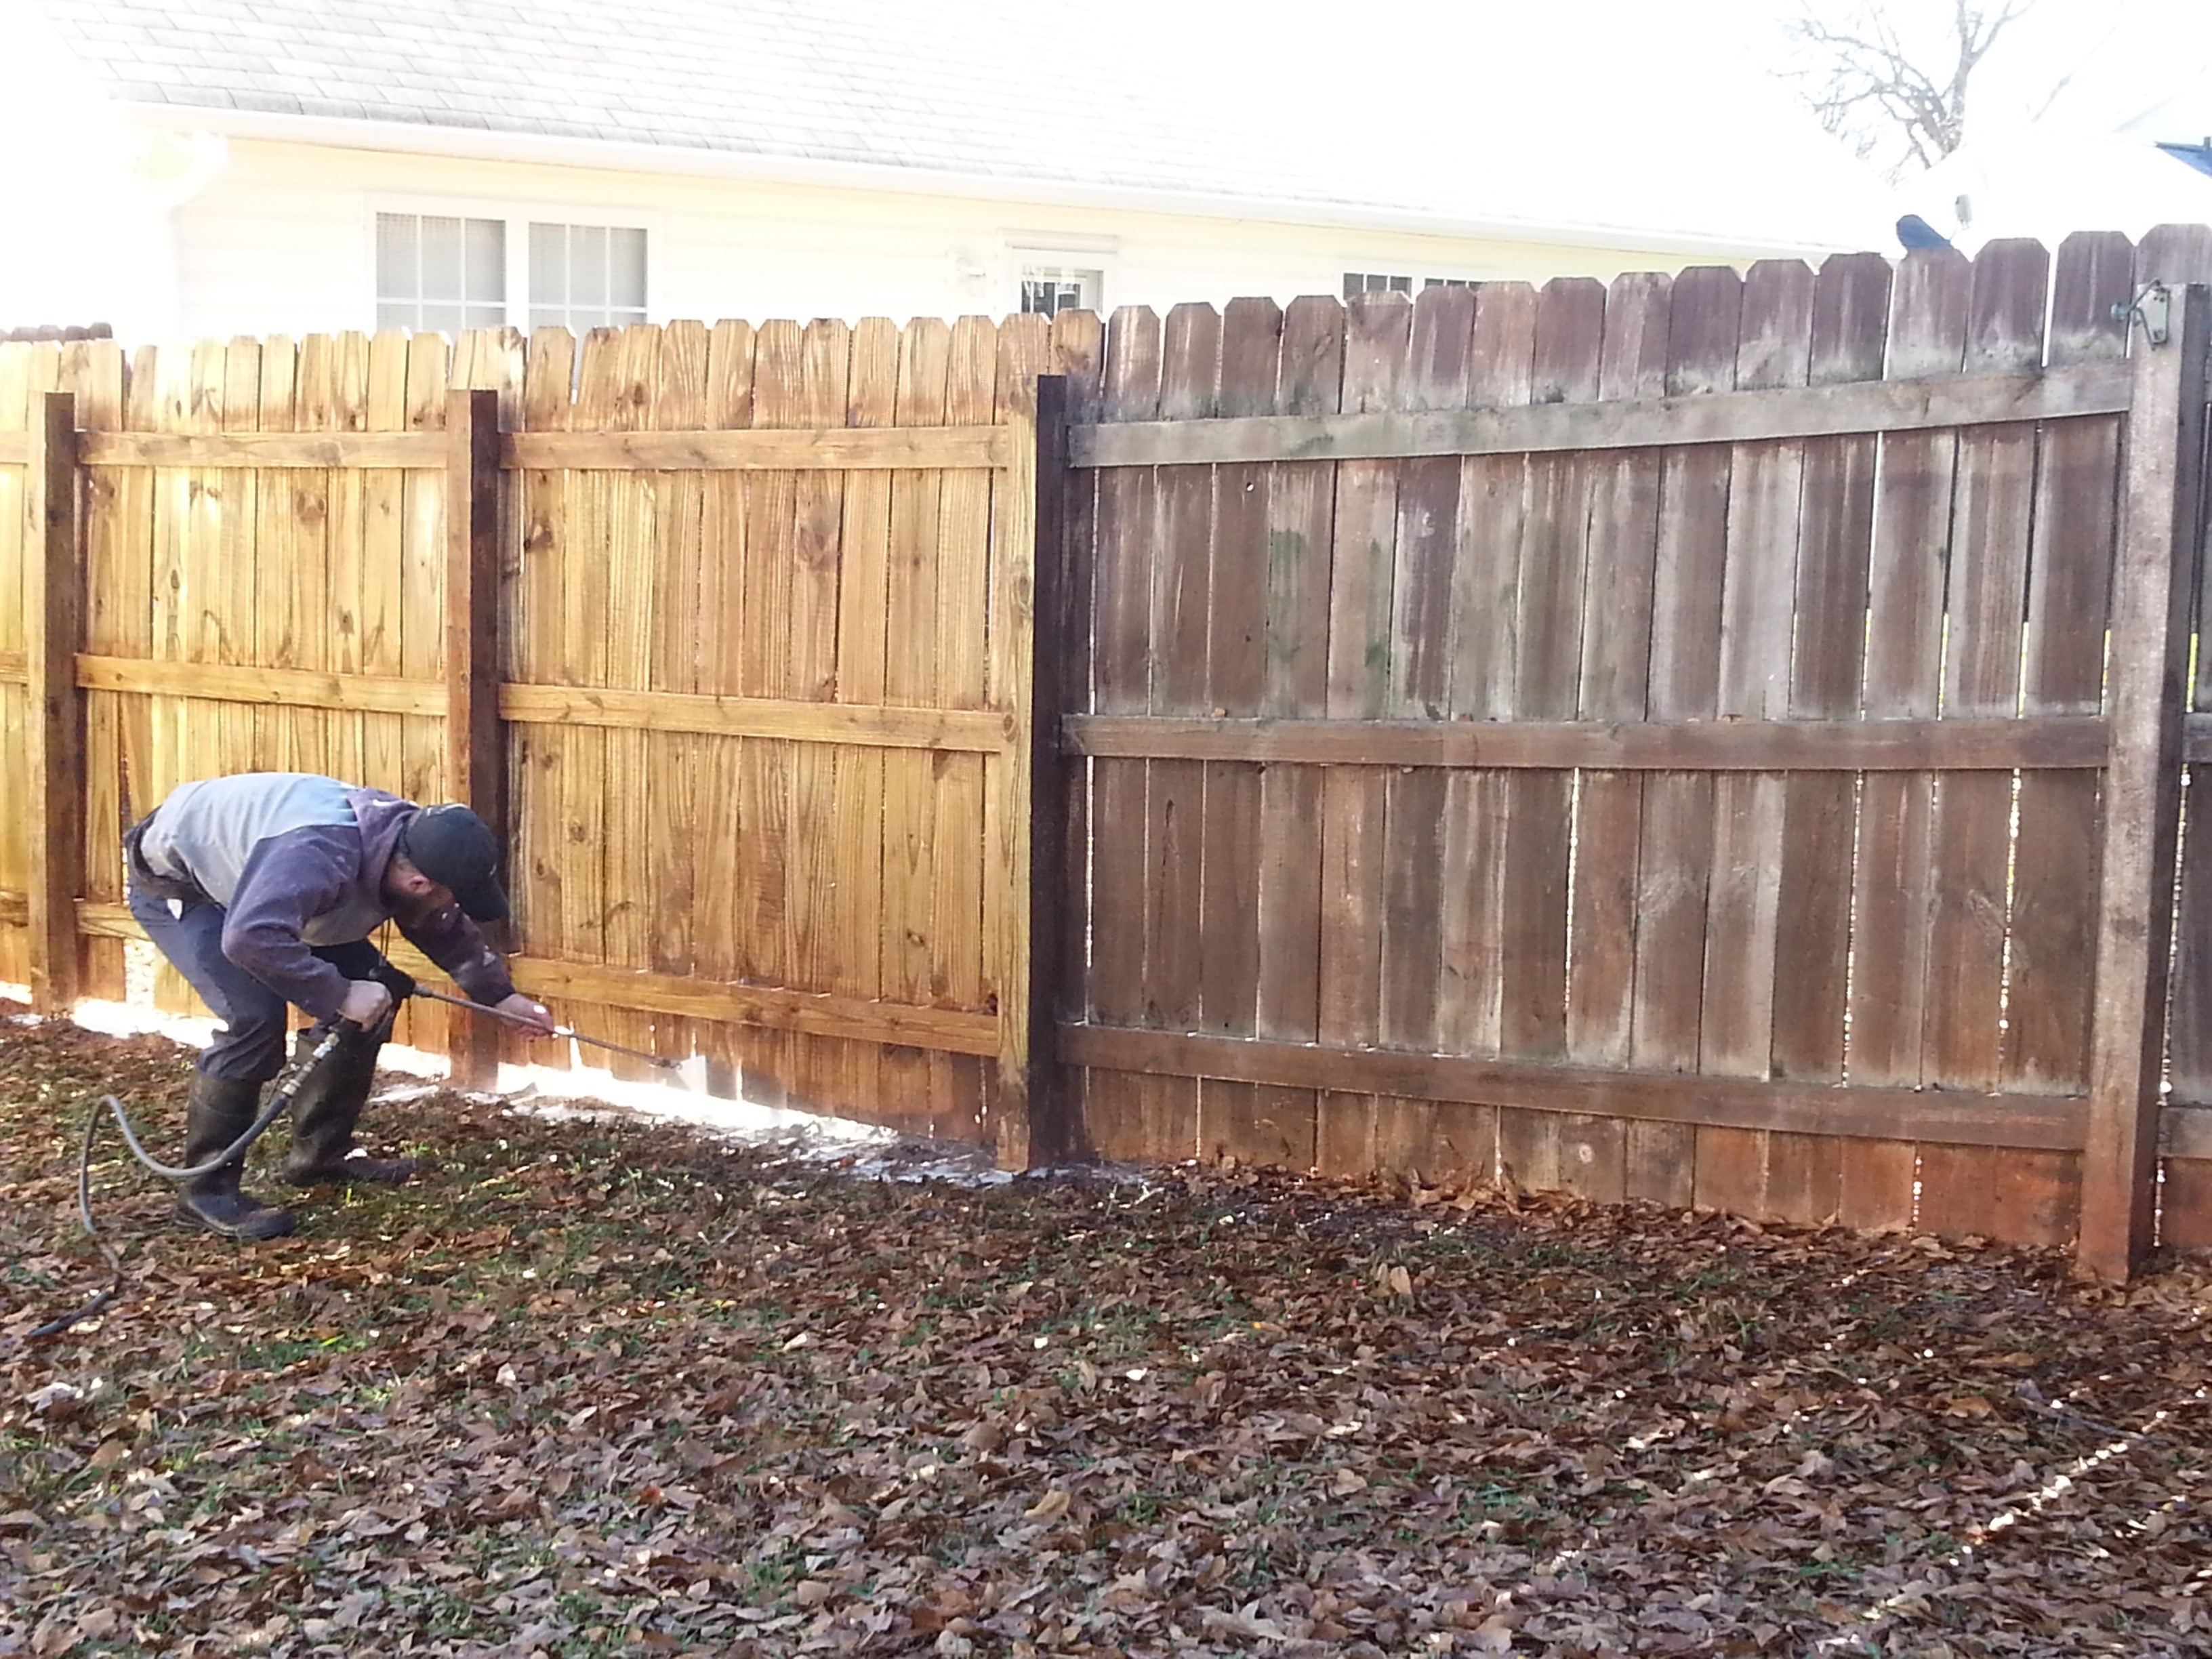 Before and after pressuring washing wooden privacy fence.